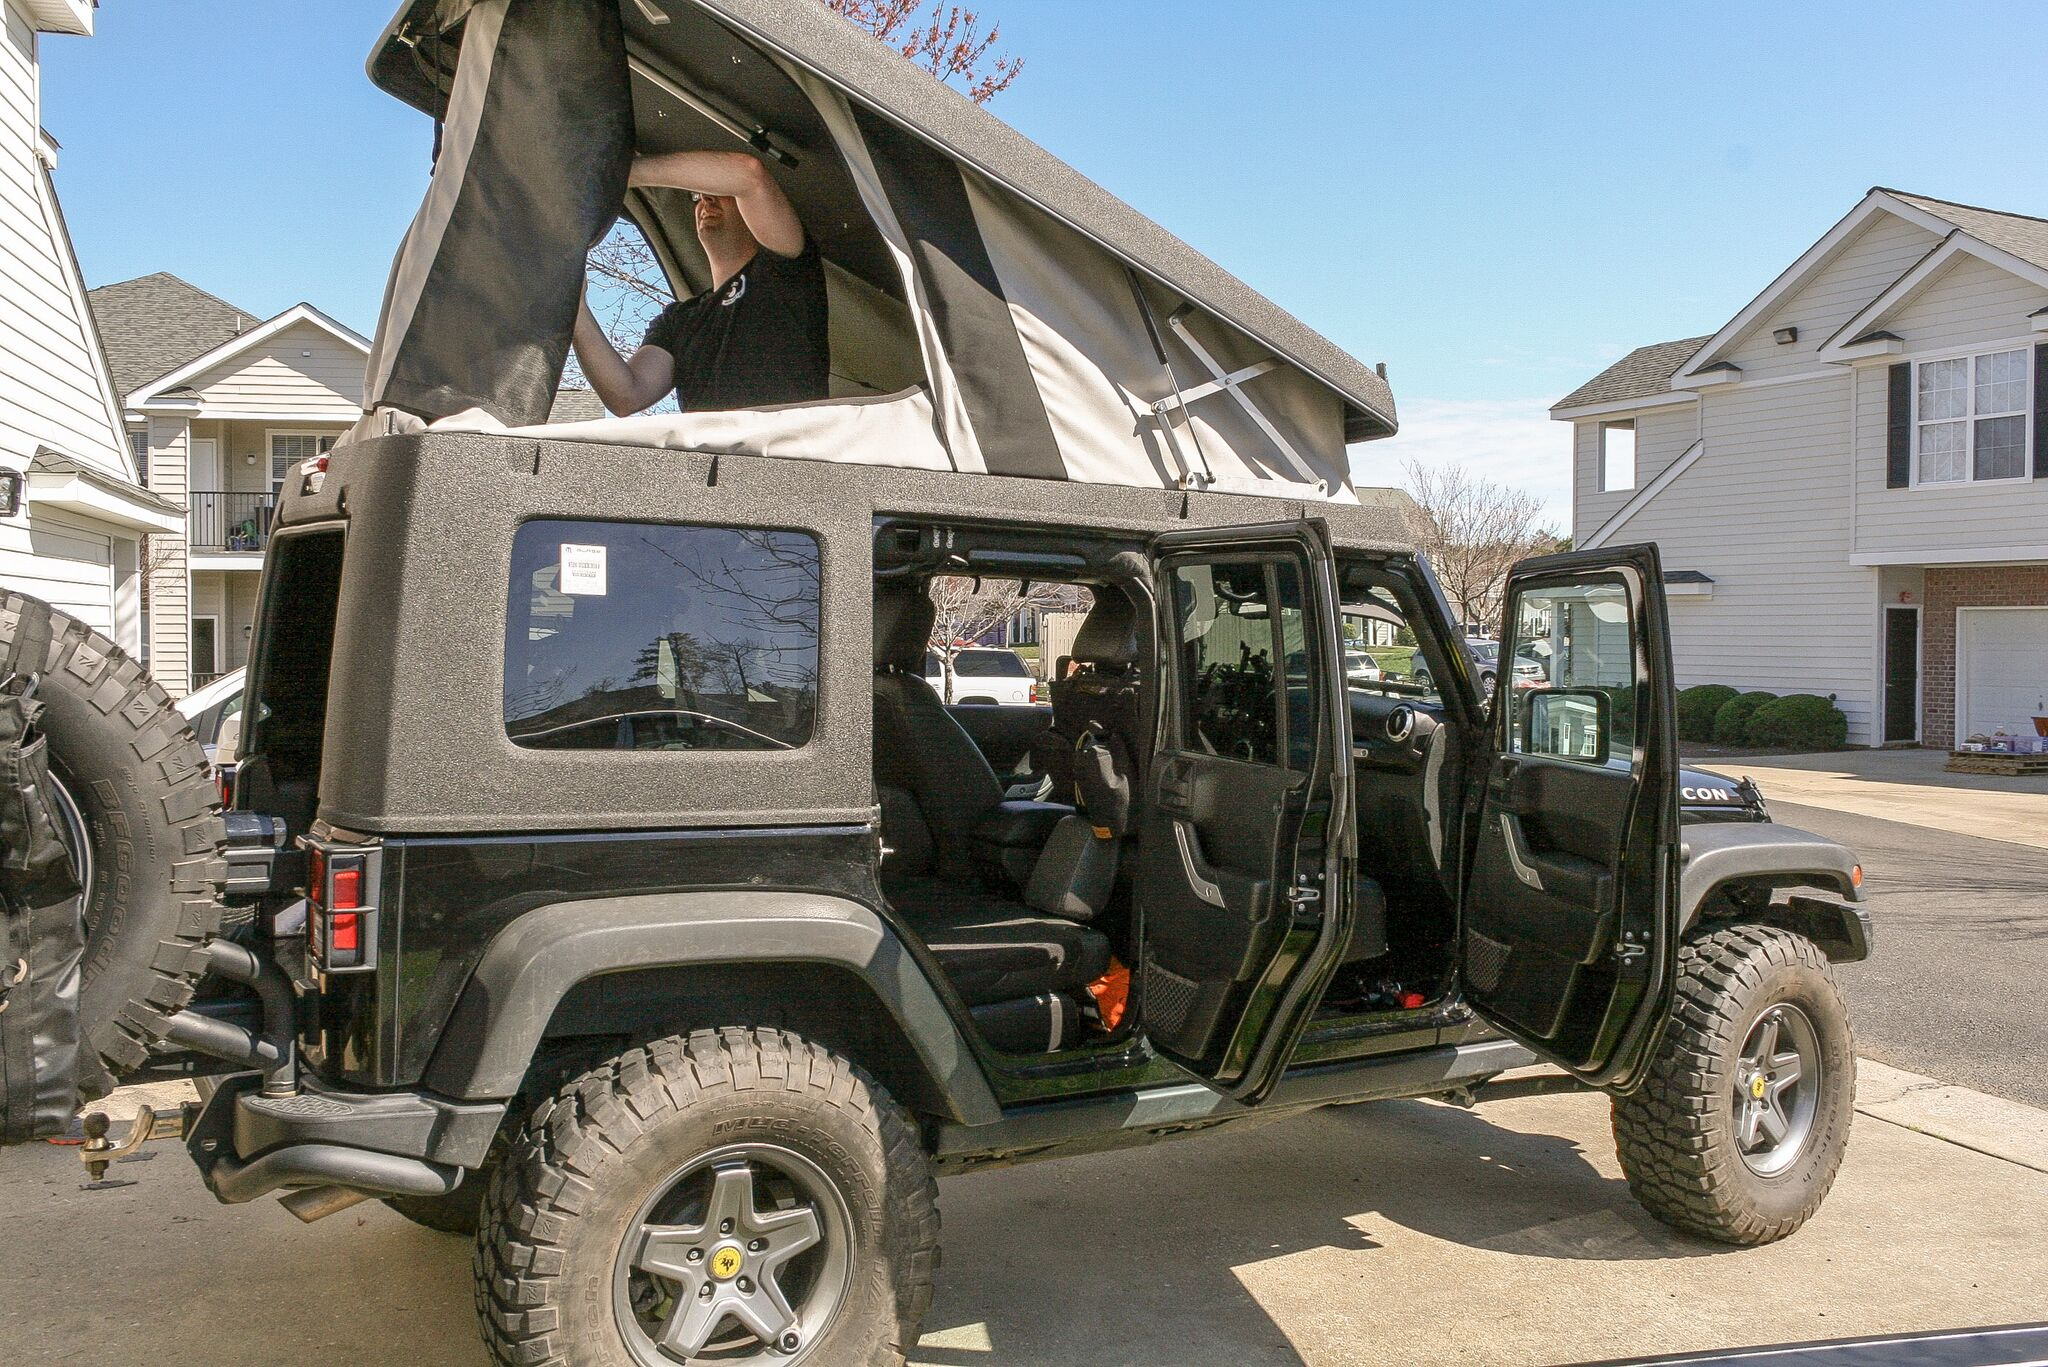 Ursa Minor Jeep Camper Conversion